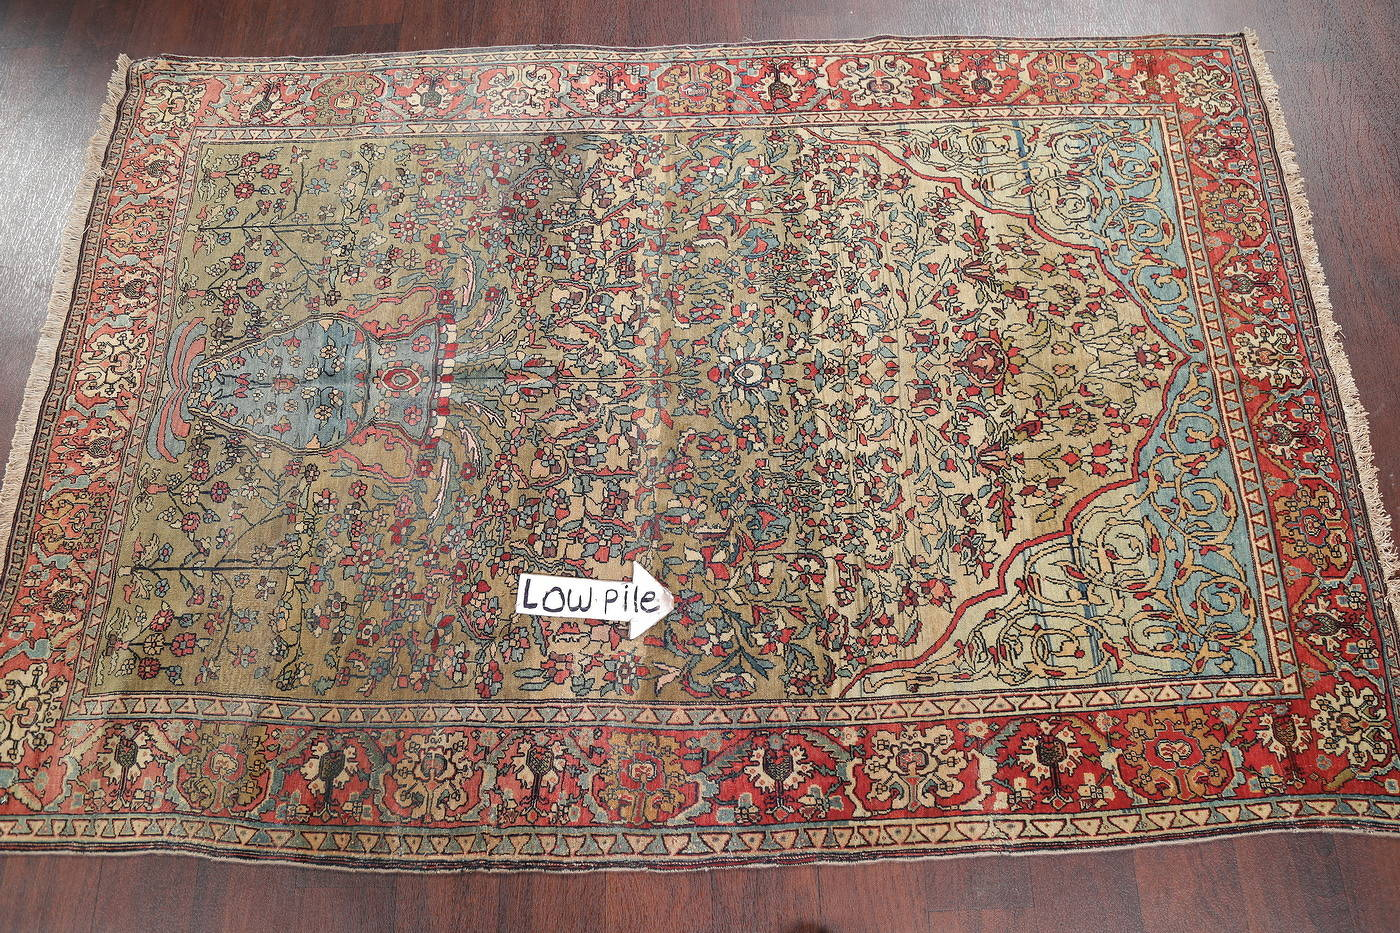 Antique Green Pictorial Kashan Mohtasham Persian Area Rug 4x6 image 15